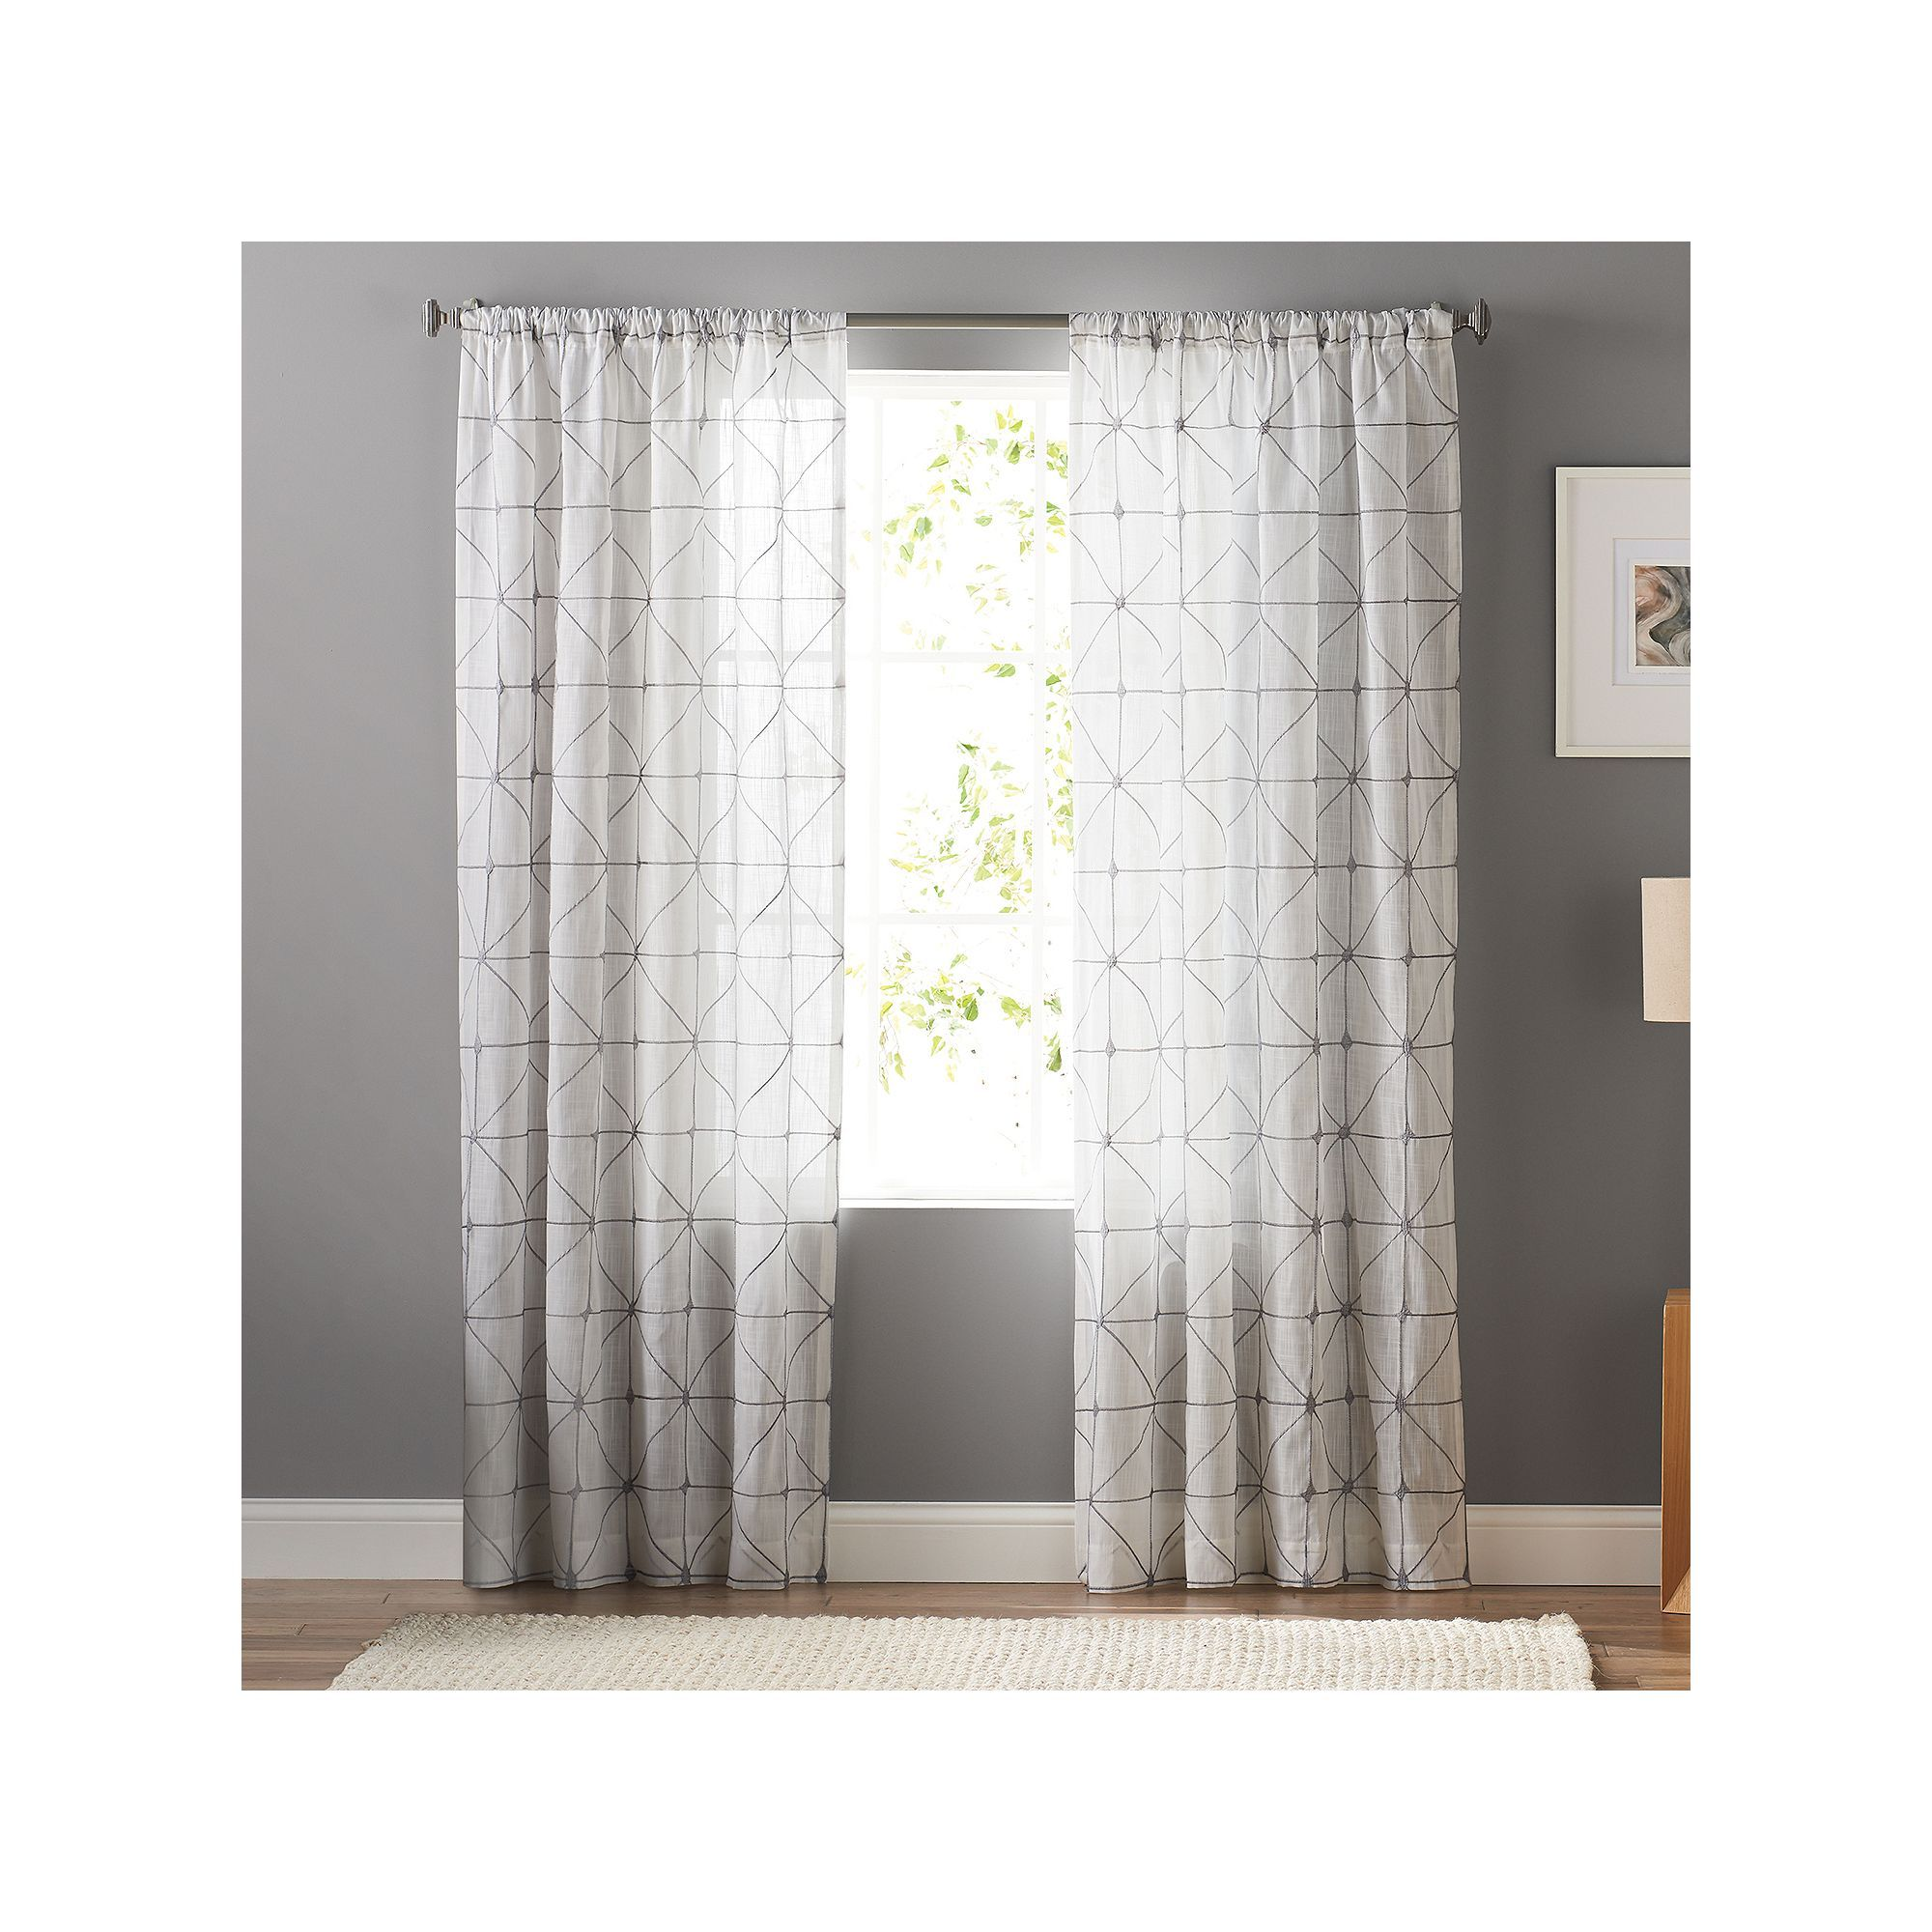 s lauren jsp home lc sheer alt kohls conrad curtain curtains treatments kohl window catalog decor